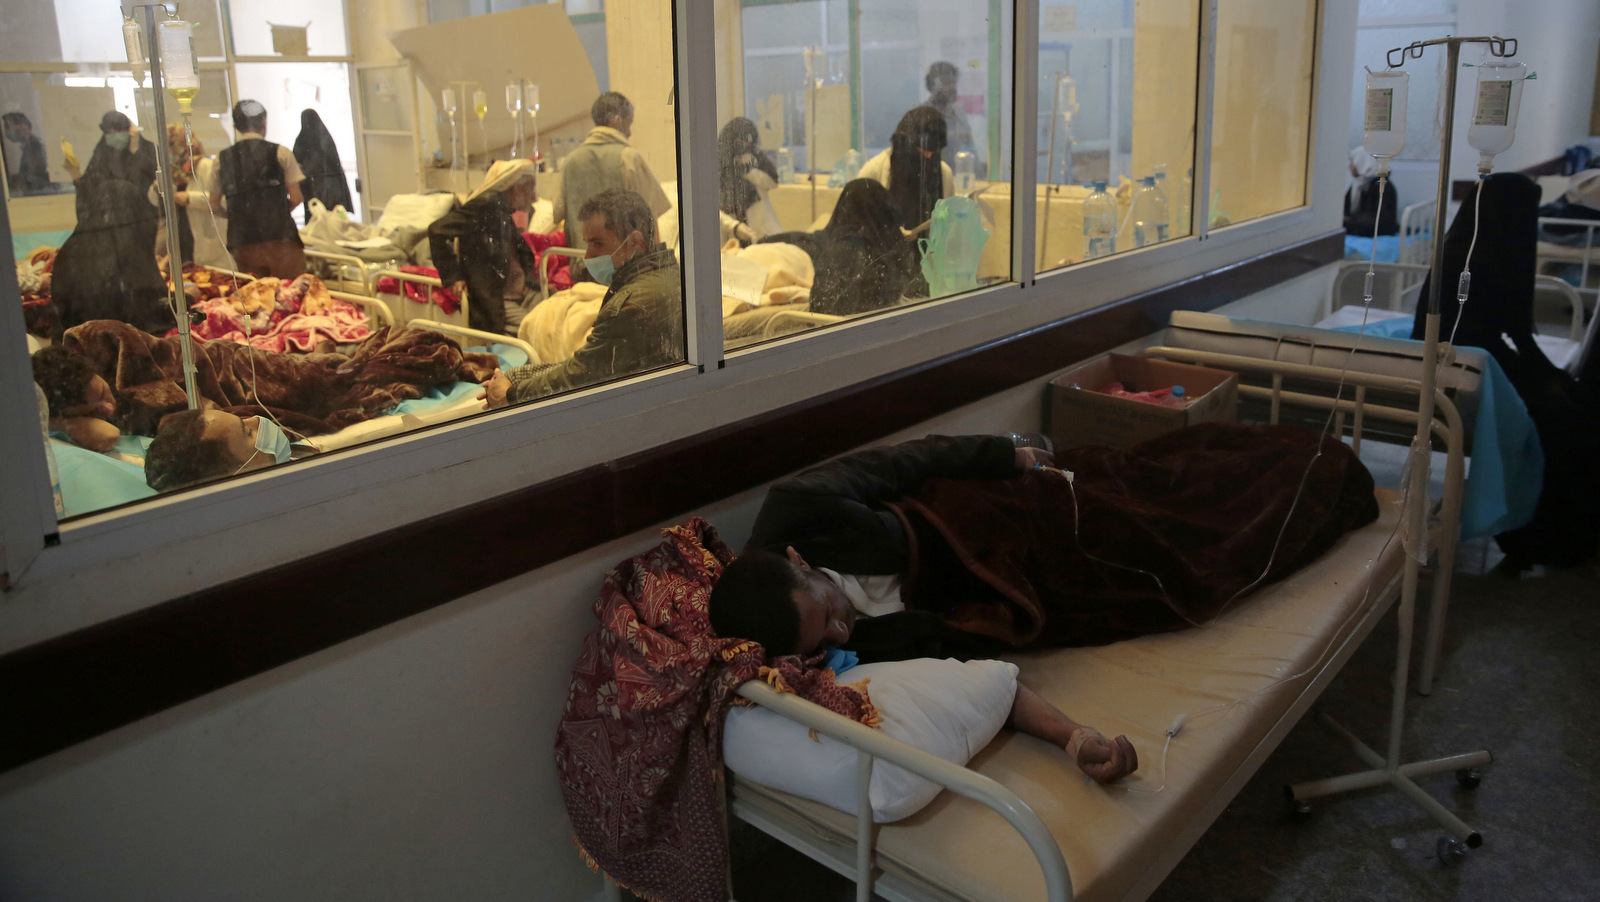 People are treated for suspected cholera infection at a hospital in Sanaa, Yemen, May. 15, 2017. While cholera is easily treated, the Saudis' ongoing blockade has crippled Yemen's health system, making it unable to respond to the crisis.(AP/Hani Mohammed)